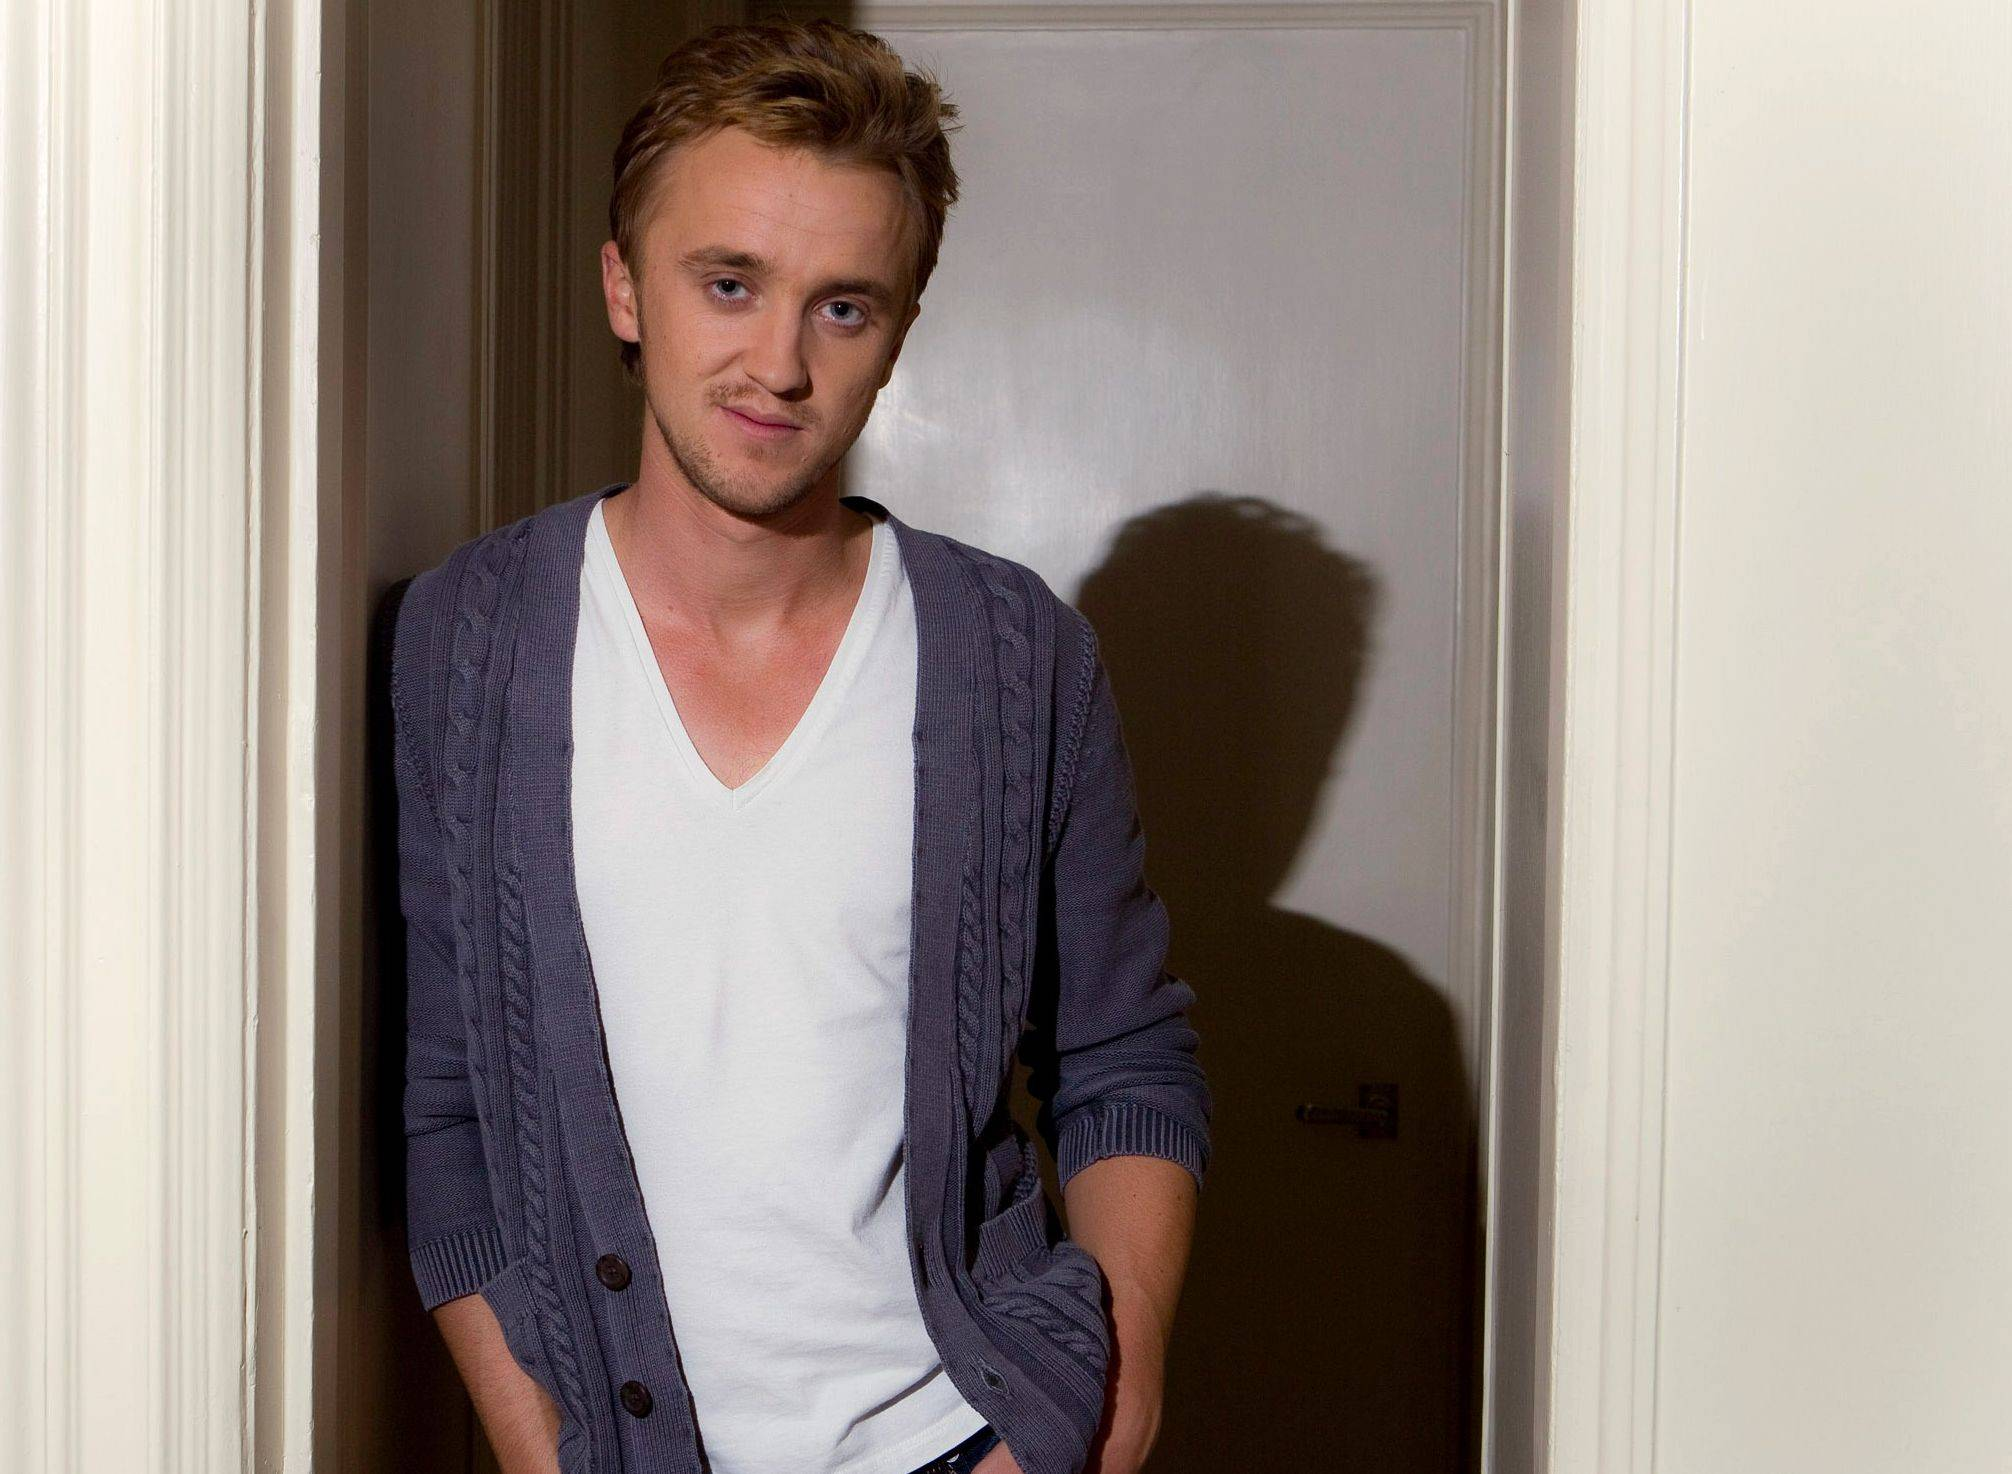 Actor Tom Felton says he's nothing like his Potter character, nasty Draco Malfoy.